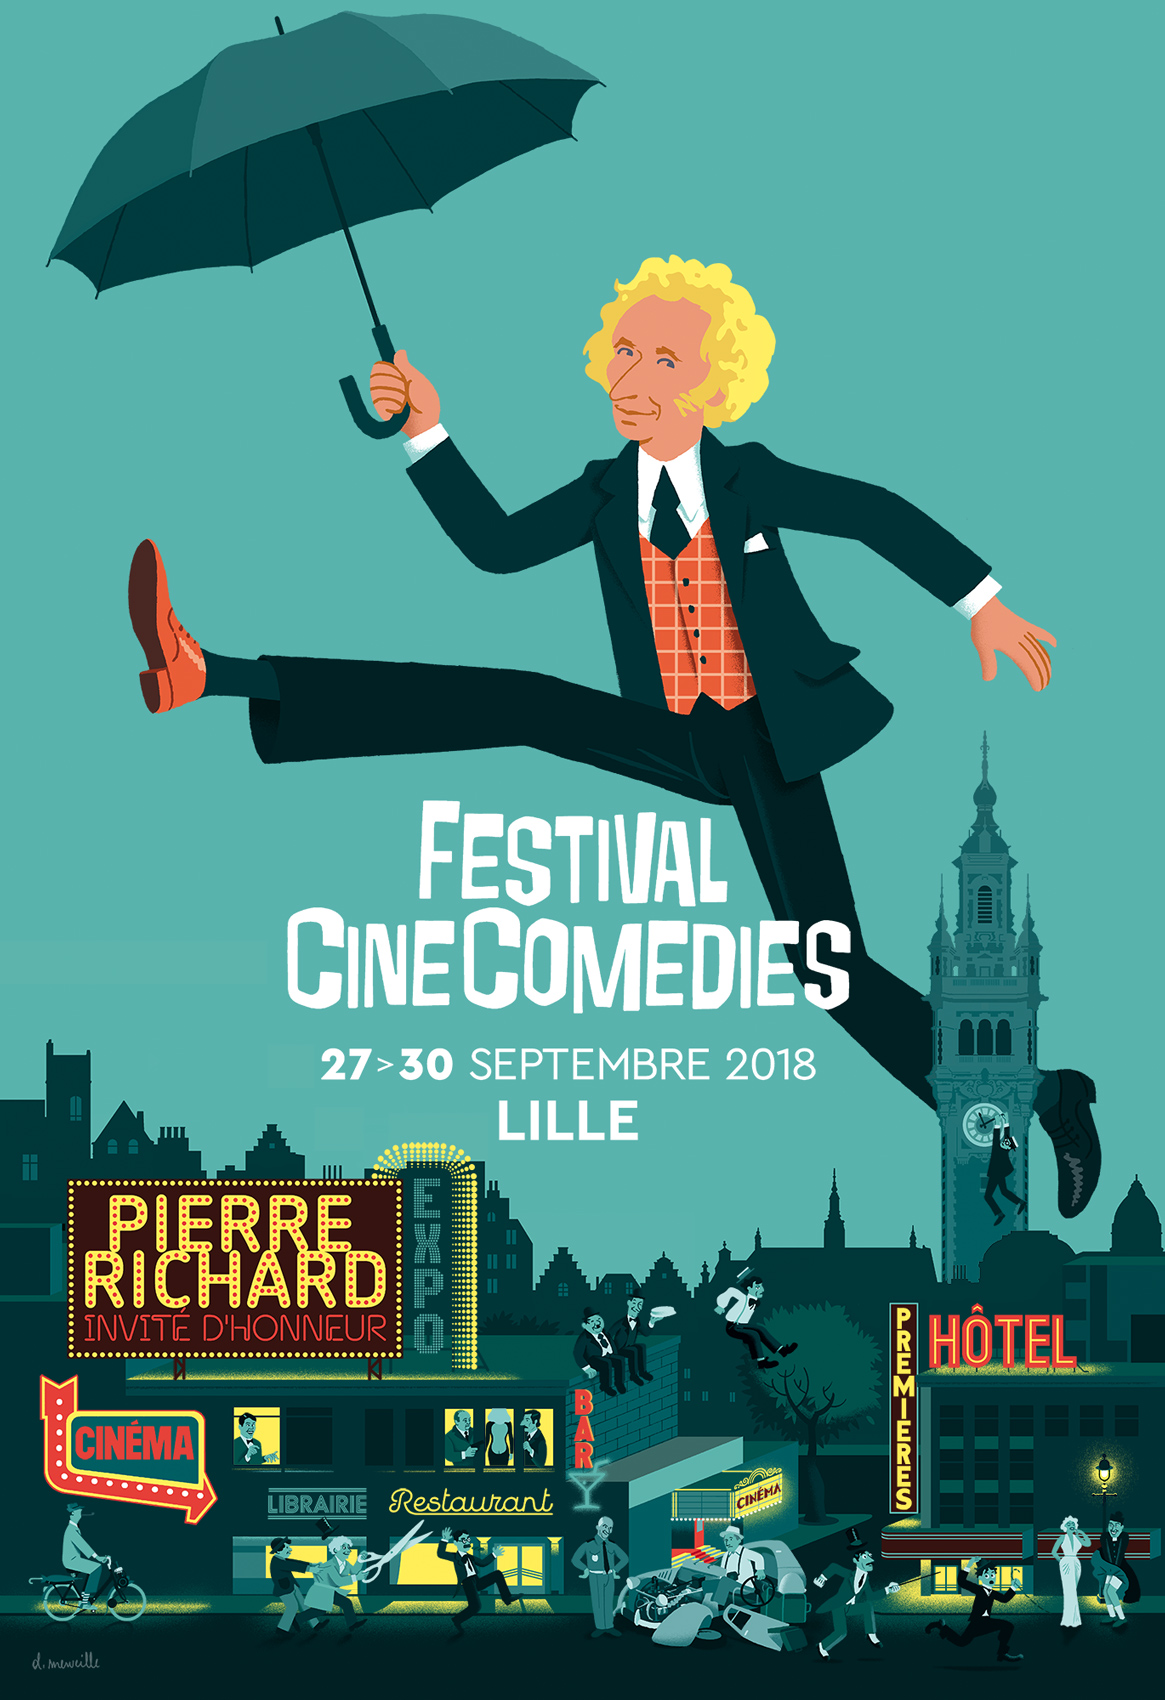 Festival CineComedies, la 1ère édition